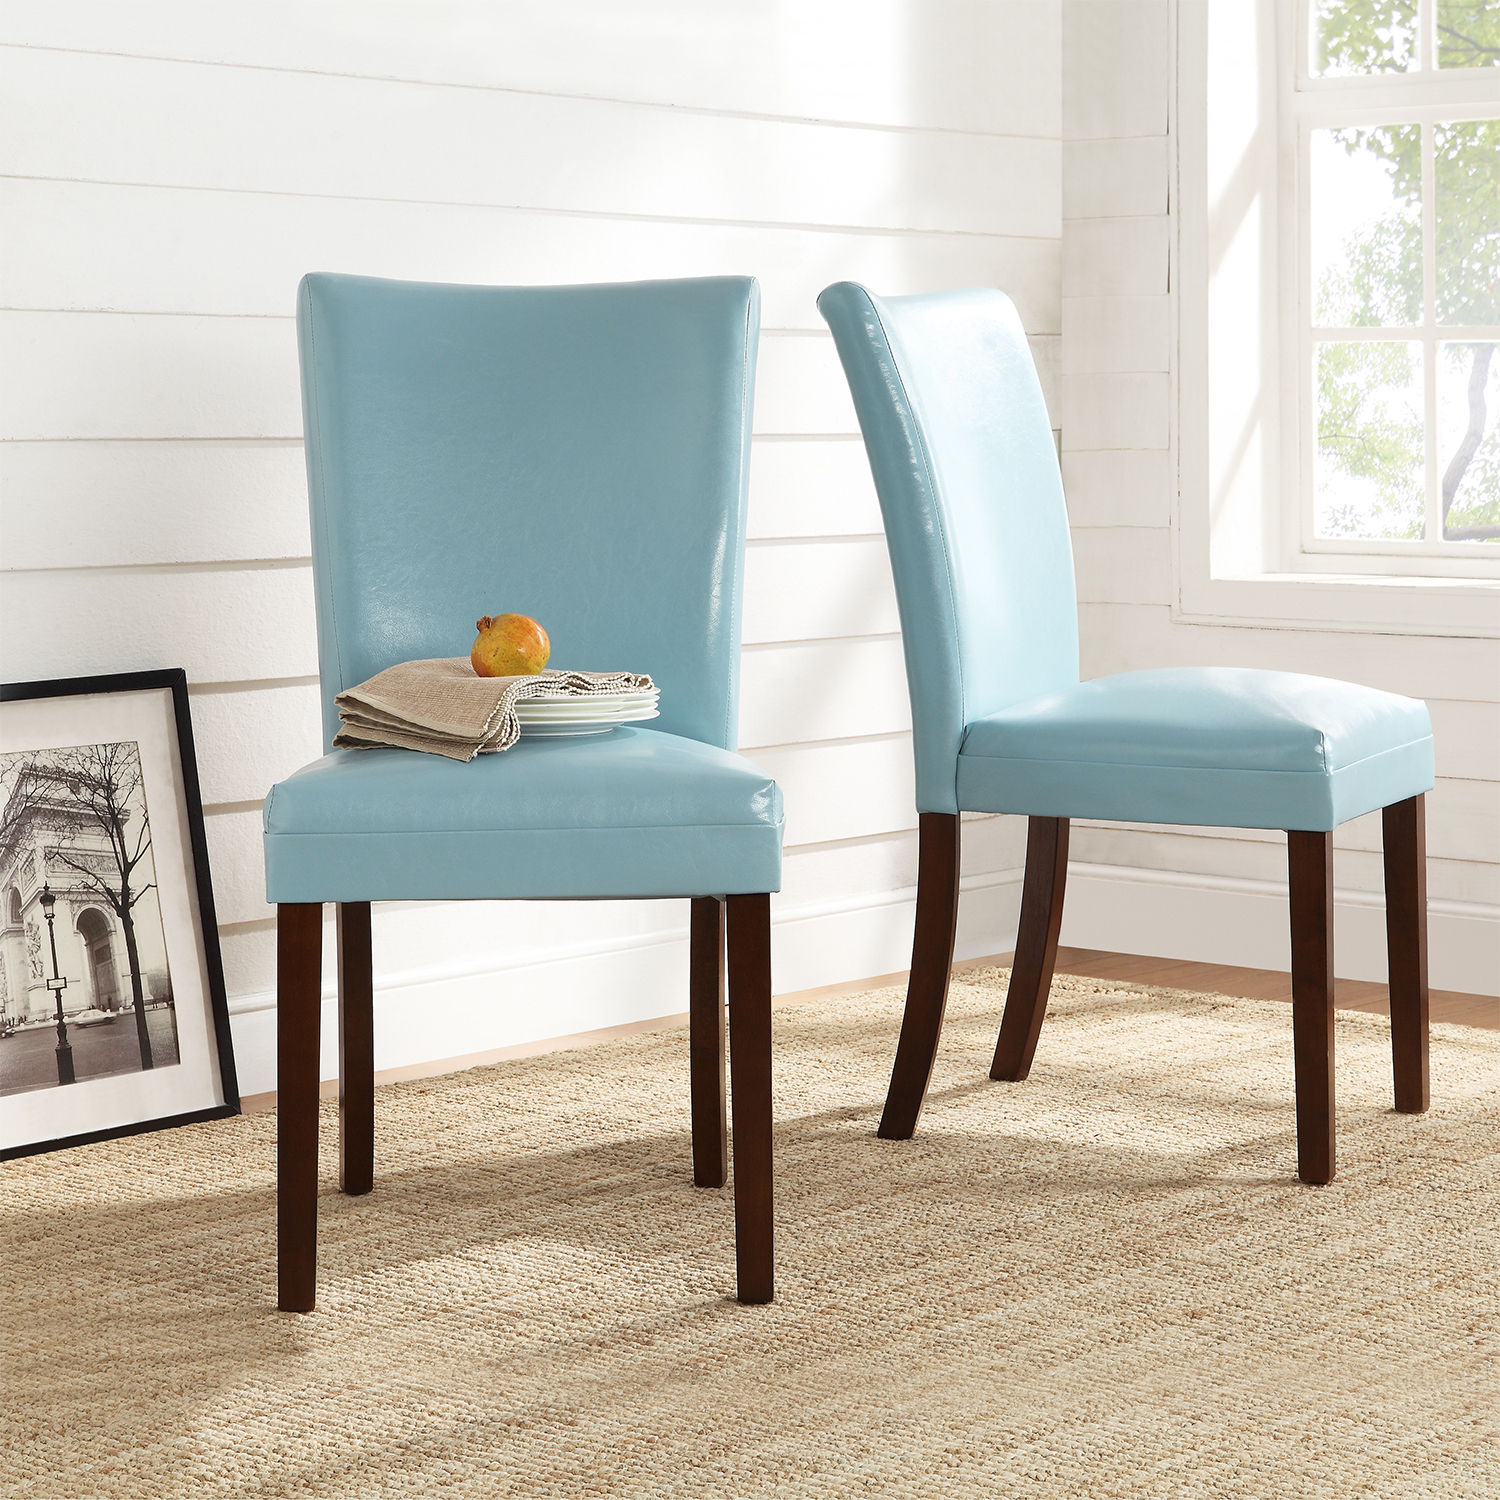 Ordinaire Tribecca Home Estonia Sky Blue Upholstered Dining Chairs (Set Of 2)